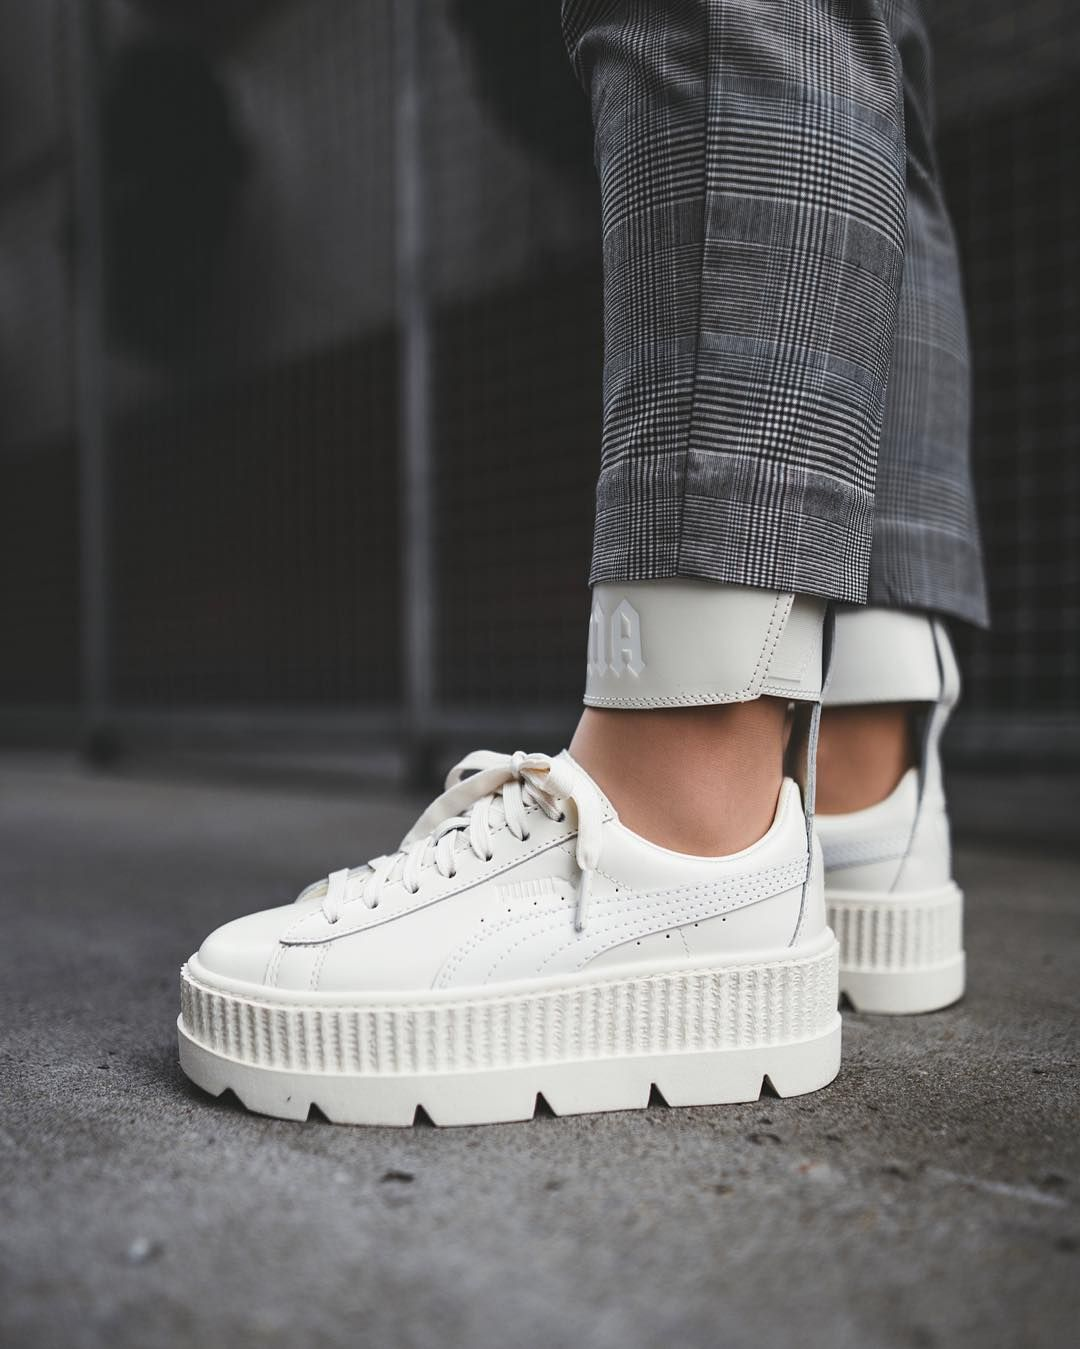 best loved e7823 1fab5 Rihanna x Puma Fenty Ankle Strap Creeper